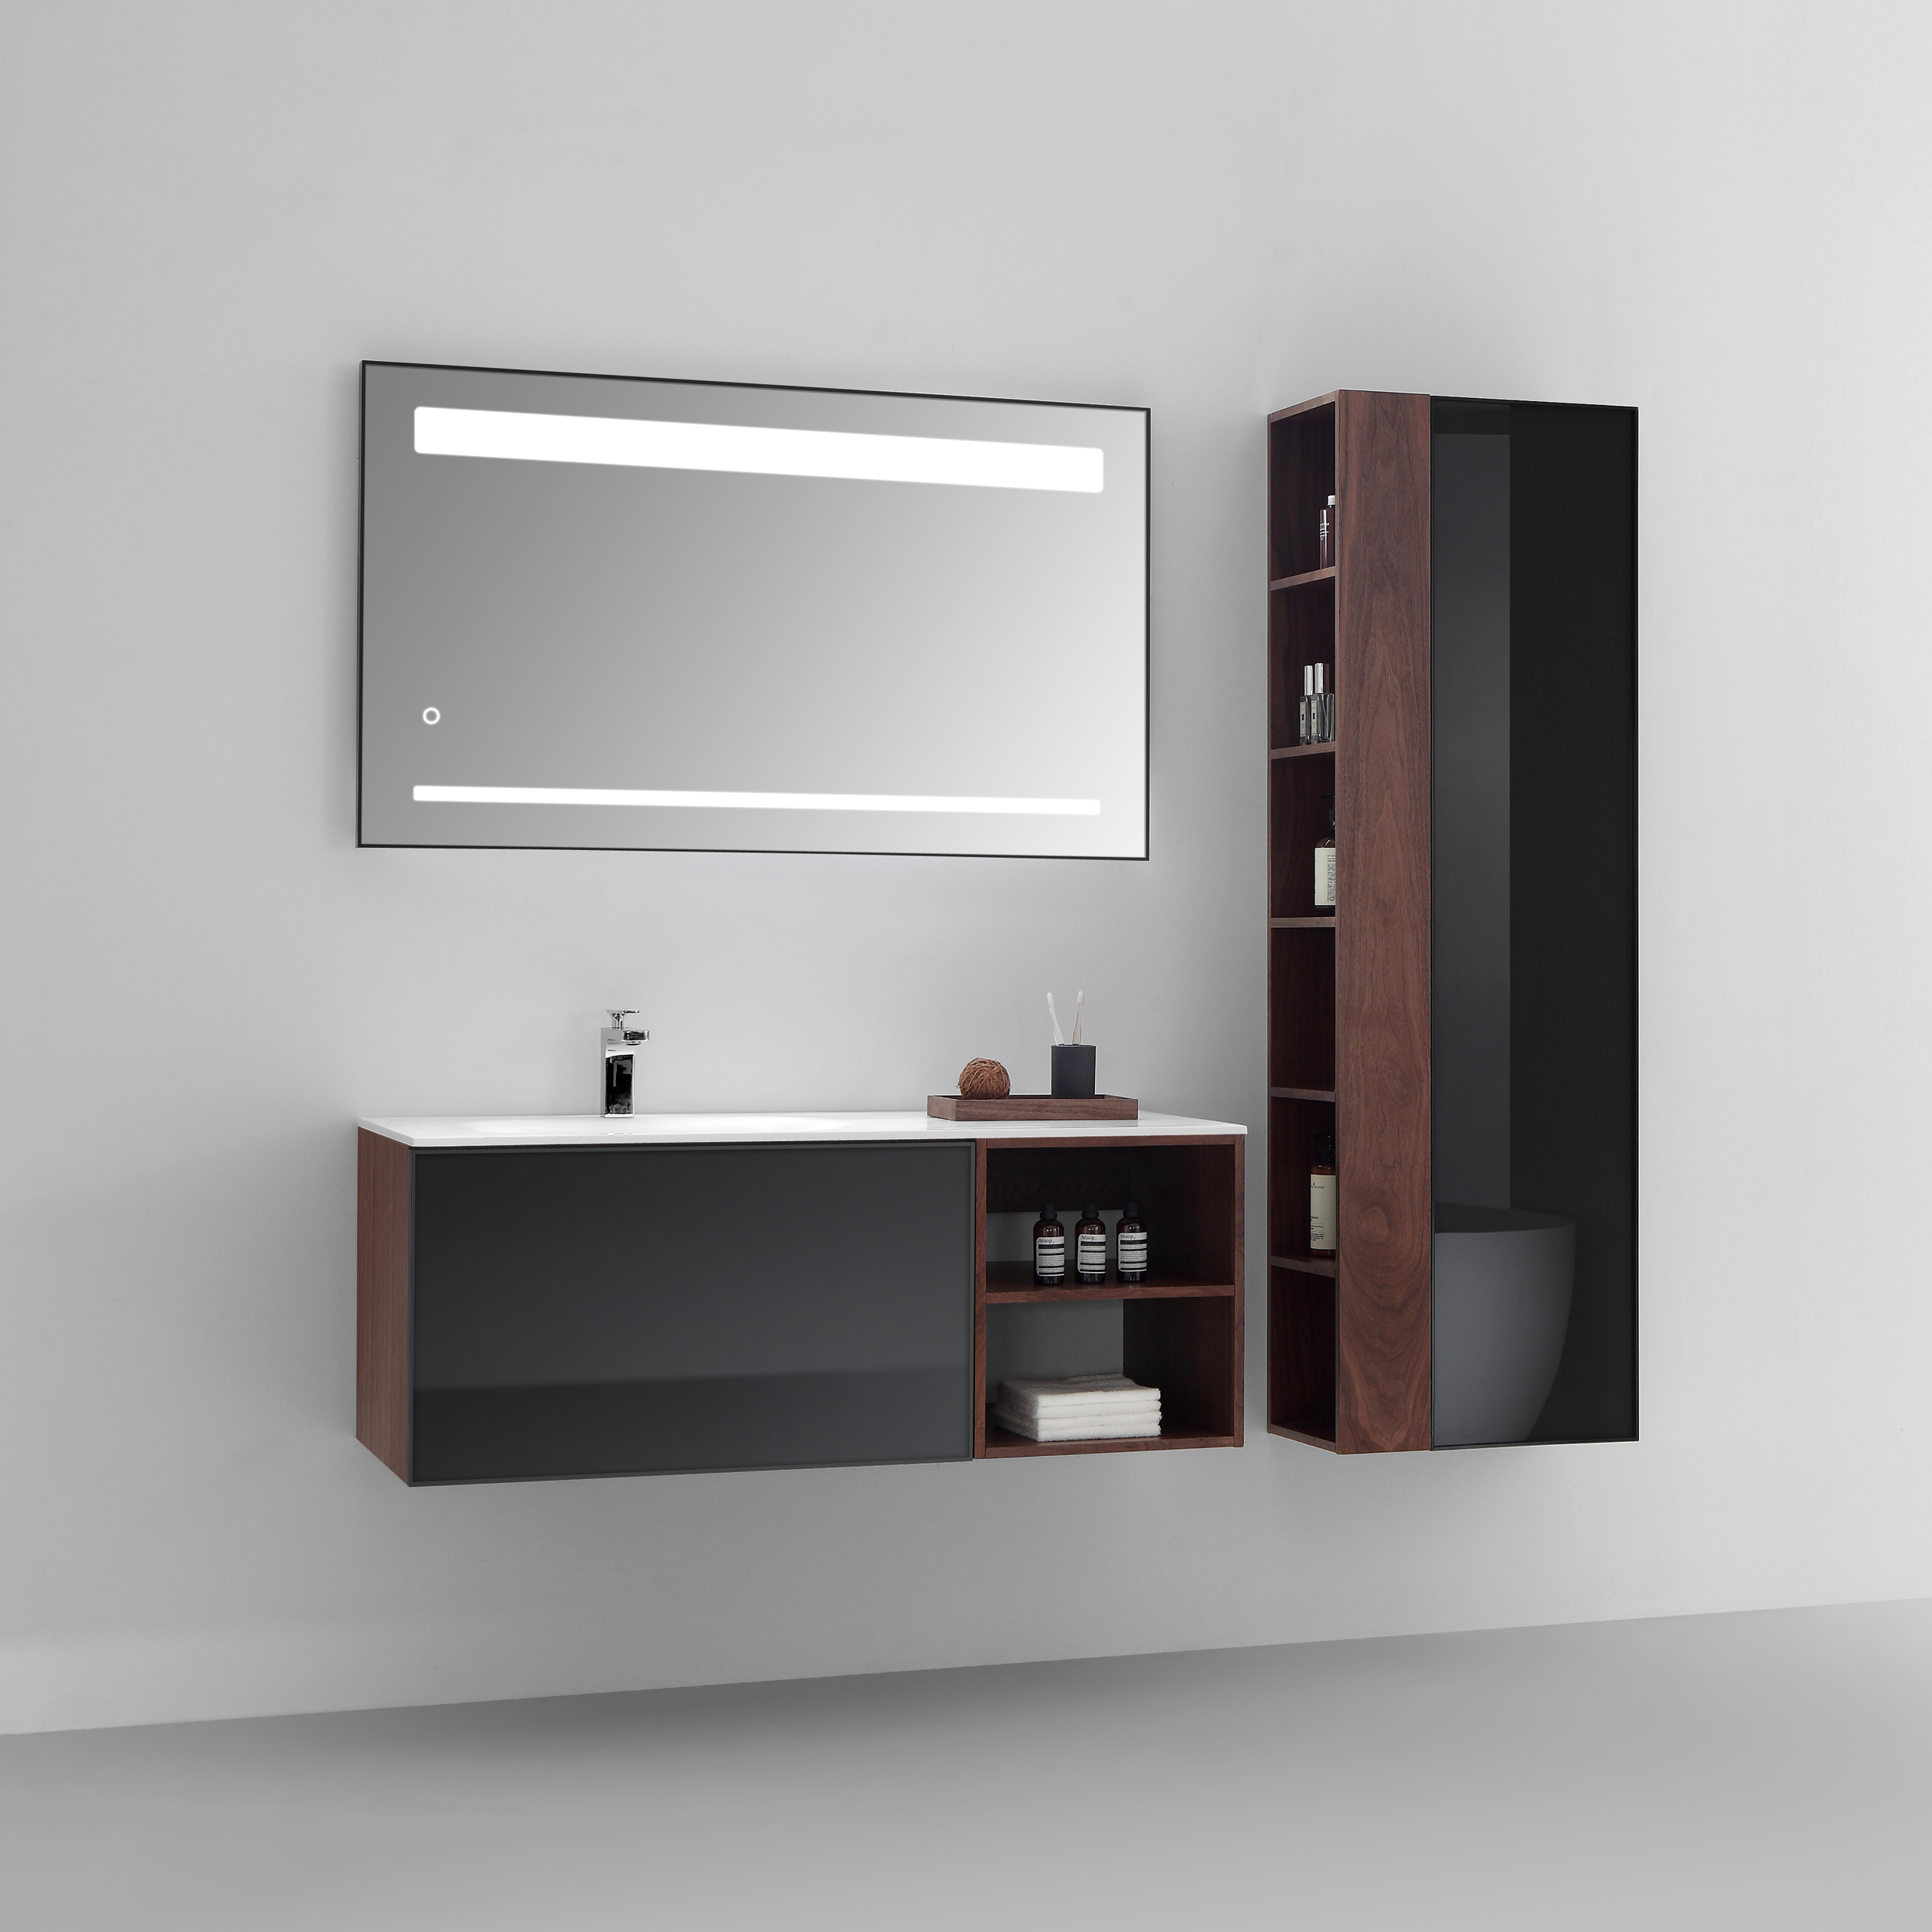 fresh bathroom best ideas wall to mount amazing creative mounted of design good cabinet home mirror furniture decorating